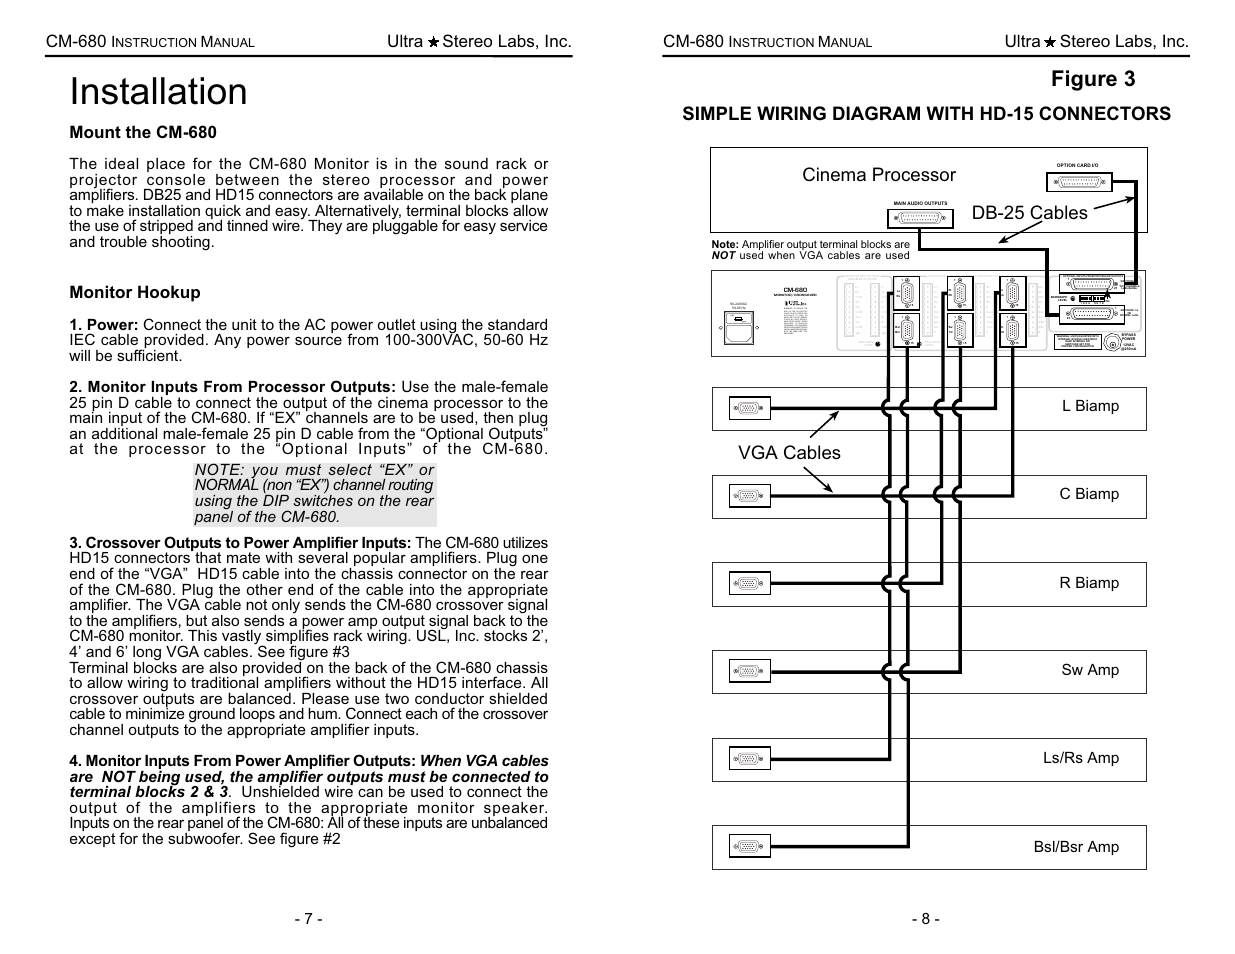 Installation, Figure 3, Simple wiring diagram with hd-15 connectors | USL  CM-680 User Manual | Page 9 / 16